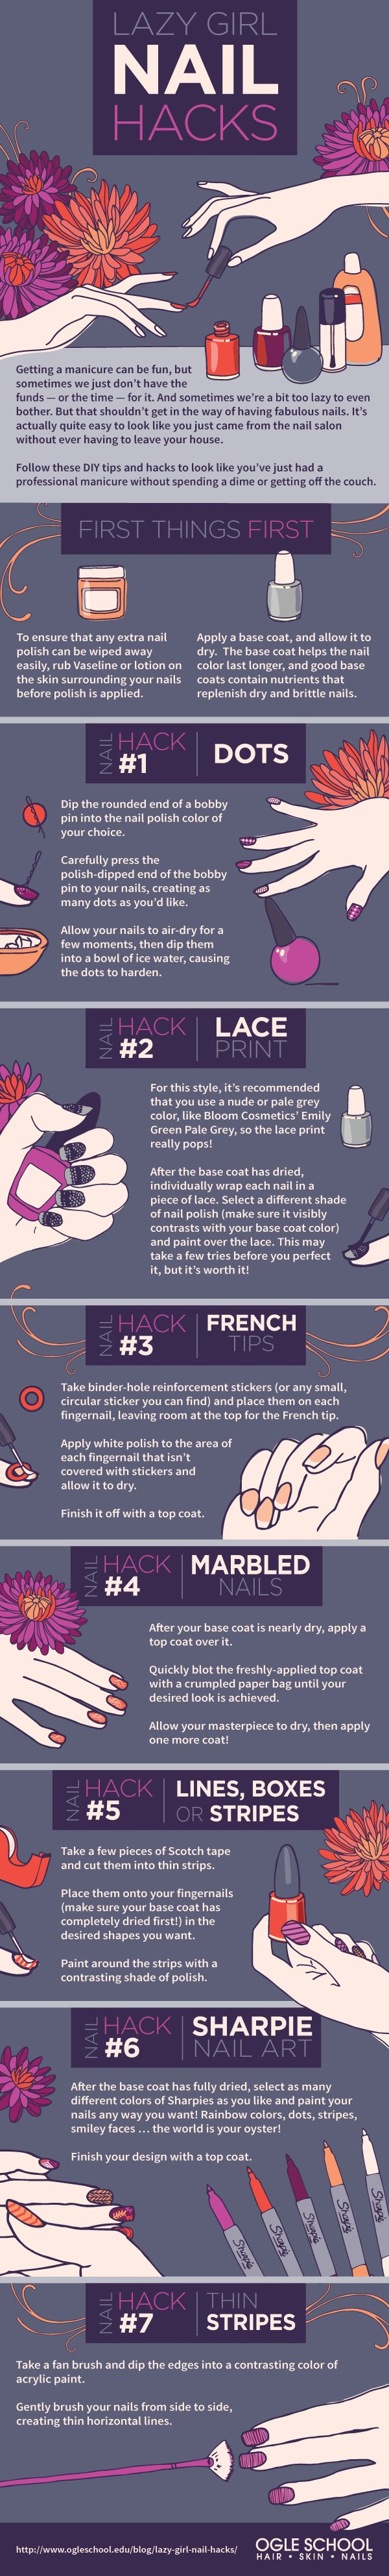 Lazy Girl Nail Hacks  [by Ogle School -- via #tipsographic]. More at tipsographic.com